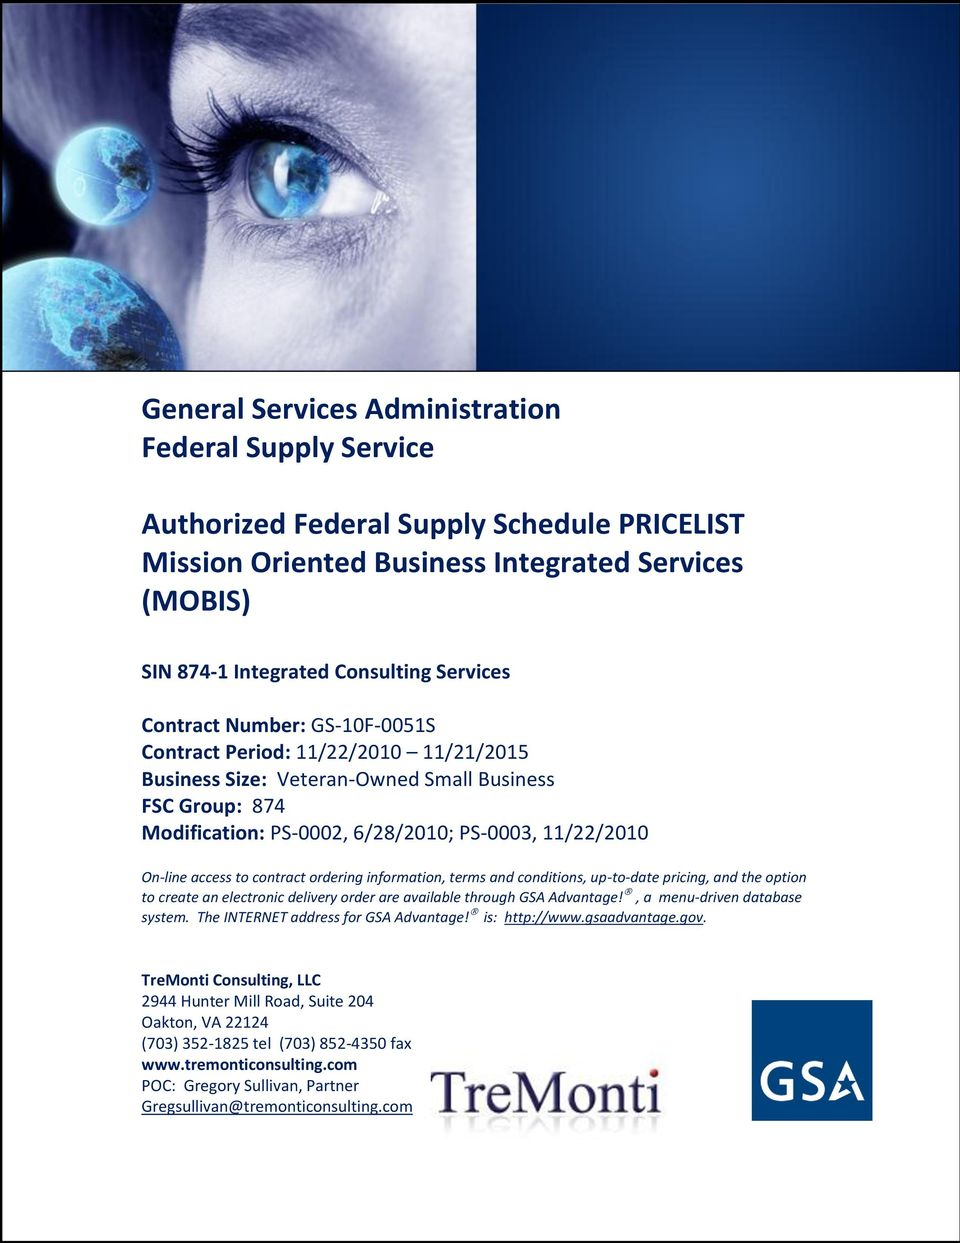 contract ordering information, terms and conditions, up-to-date pricing, and the option to create an electronic delivery order are available through GSA Advantage!, a menu-driven database system.